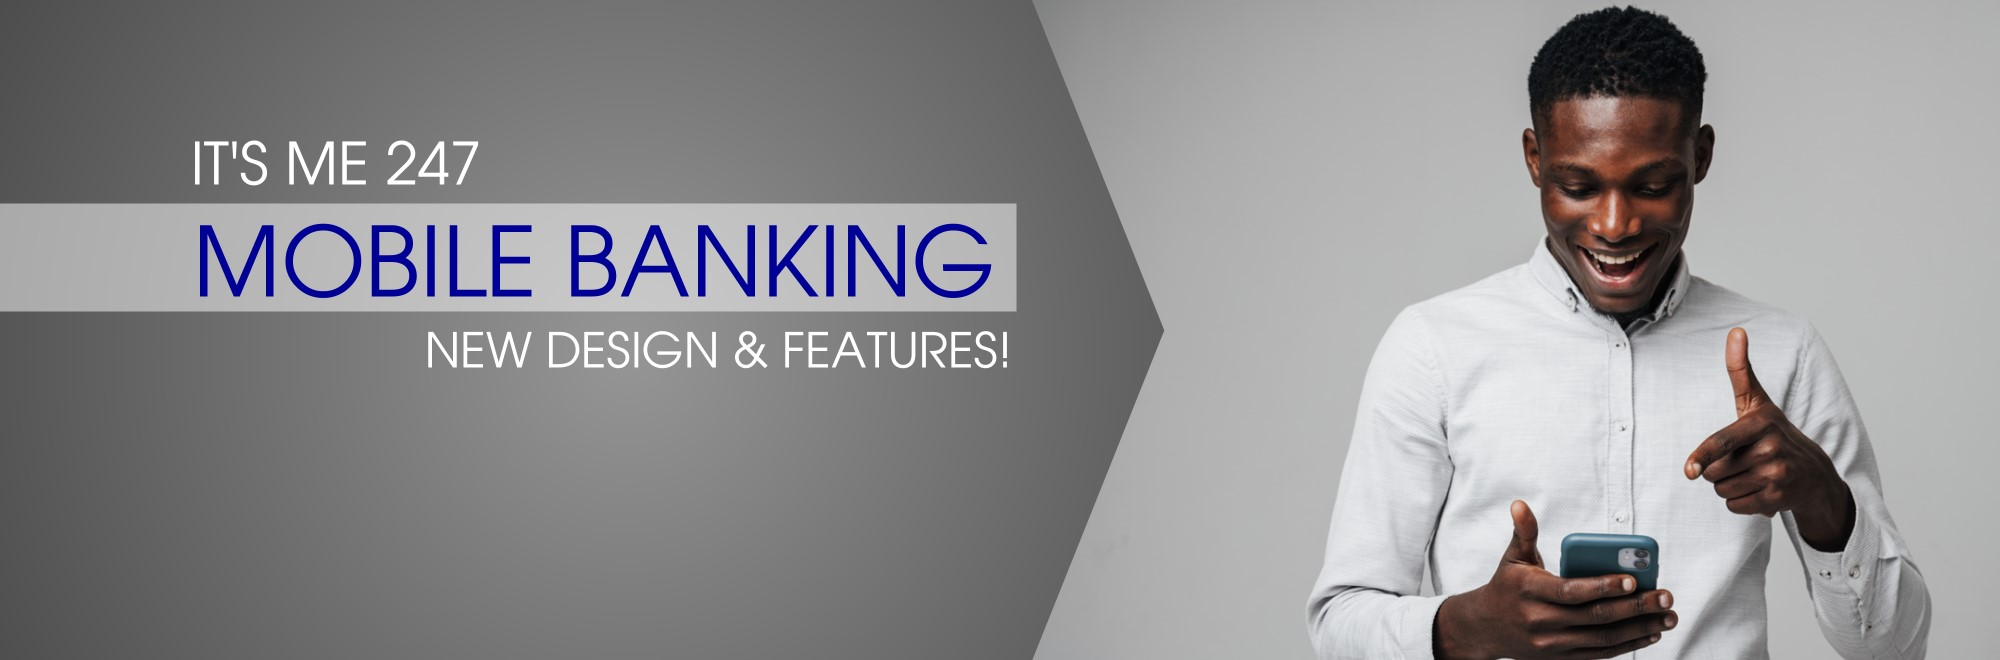 New Mobile Banking Design and Features